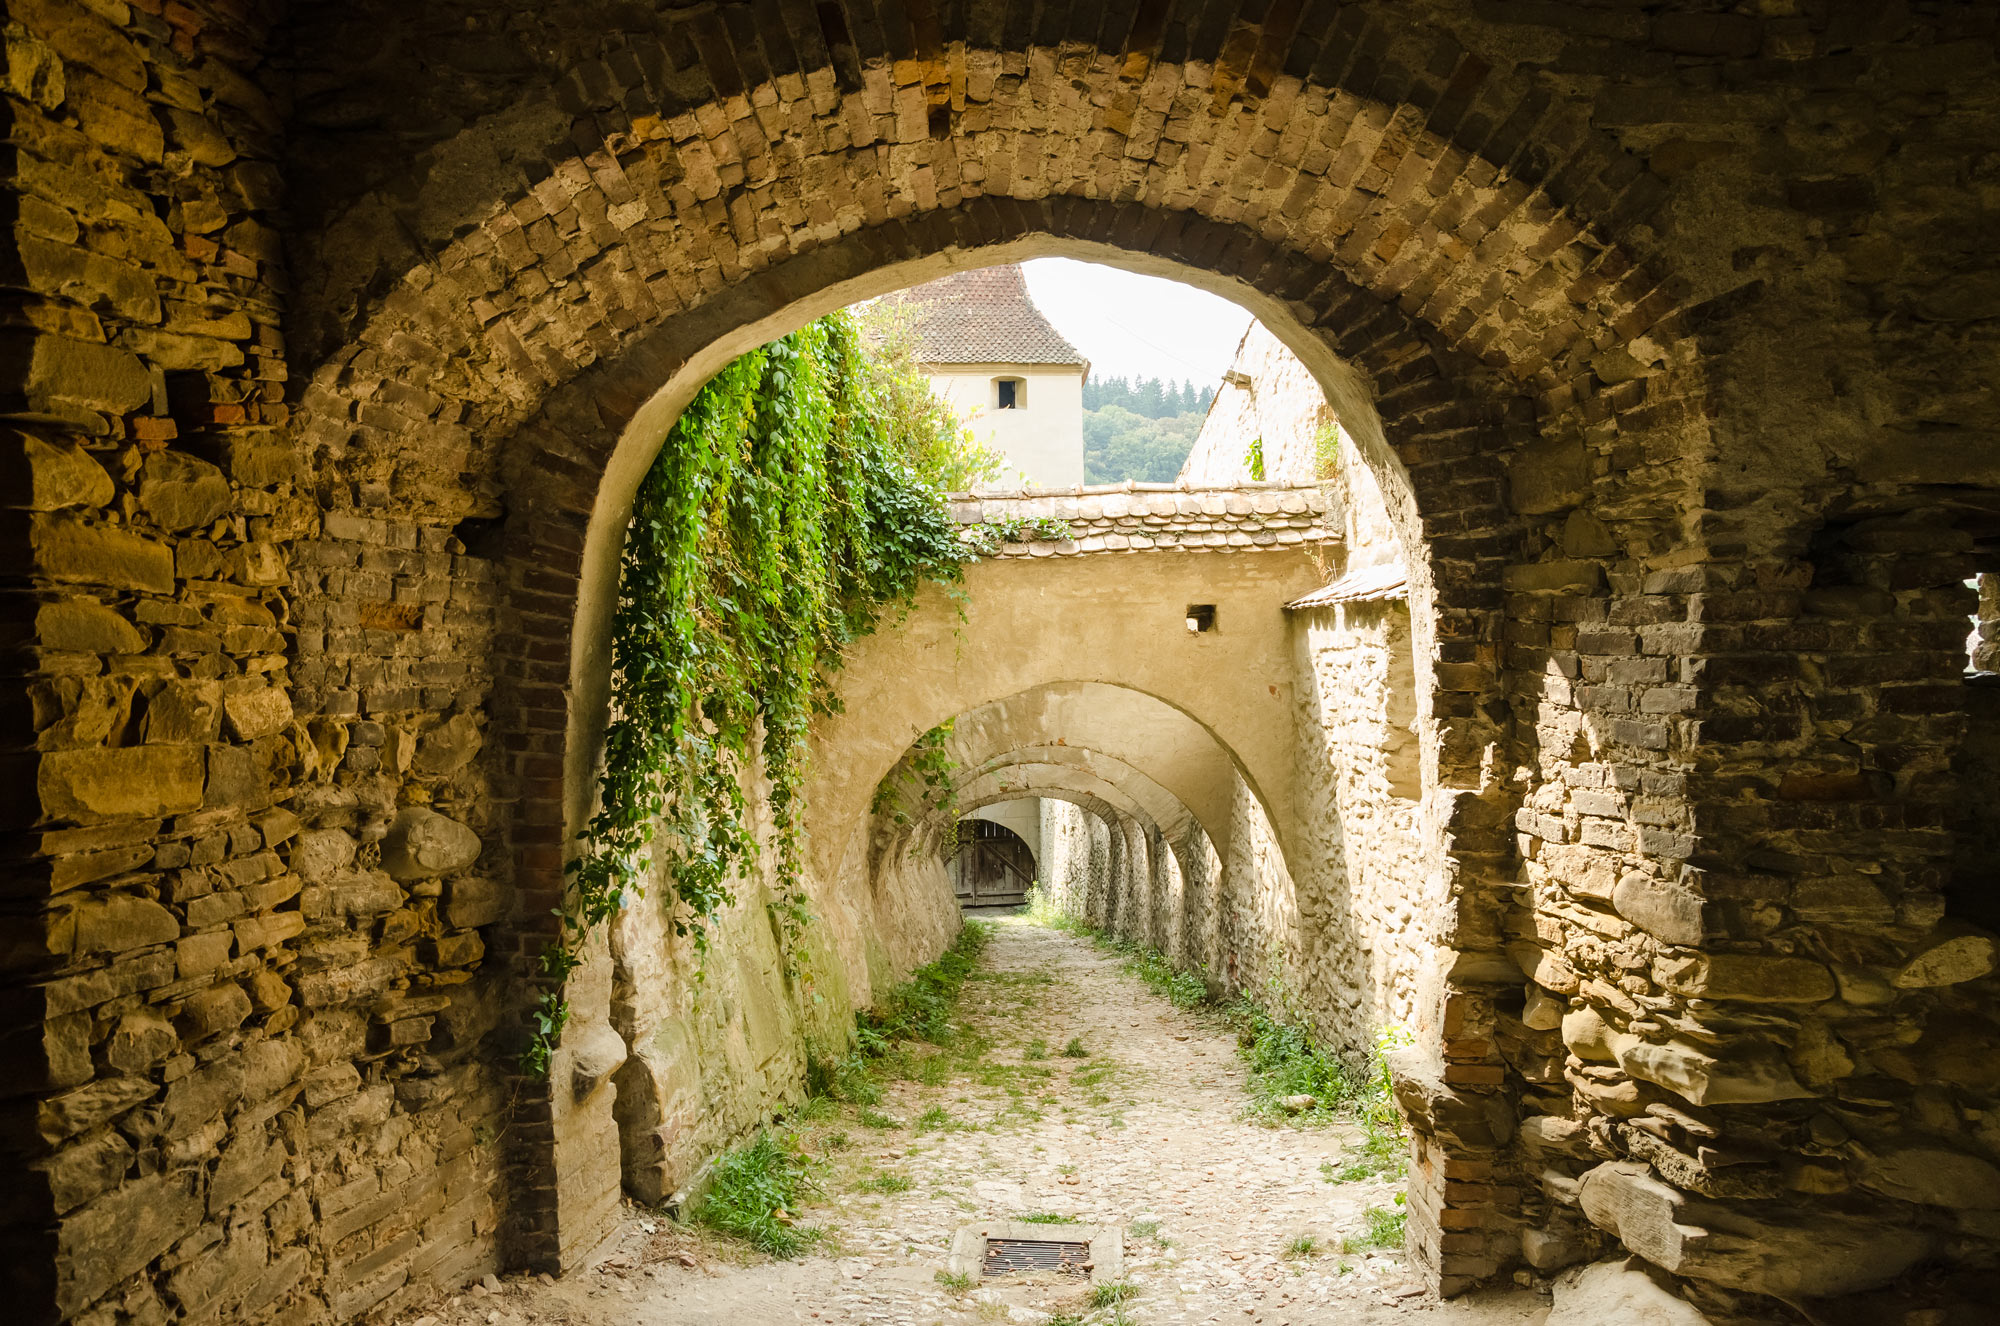 ROMANIA Travel and Tourism Information ALBAIULIA tourist – Romania Tourist Attractions Map